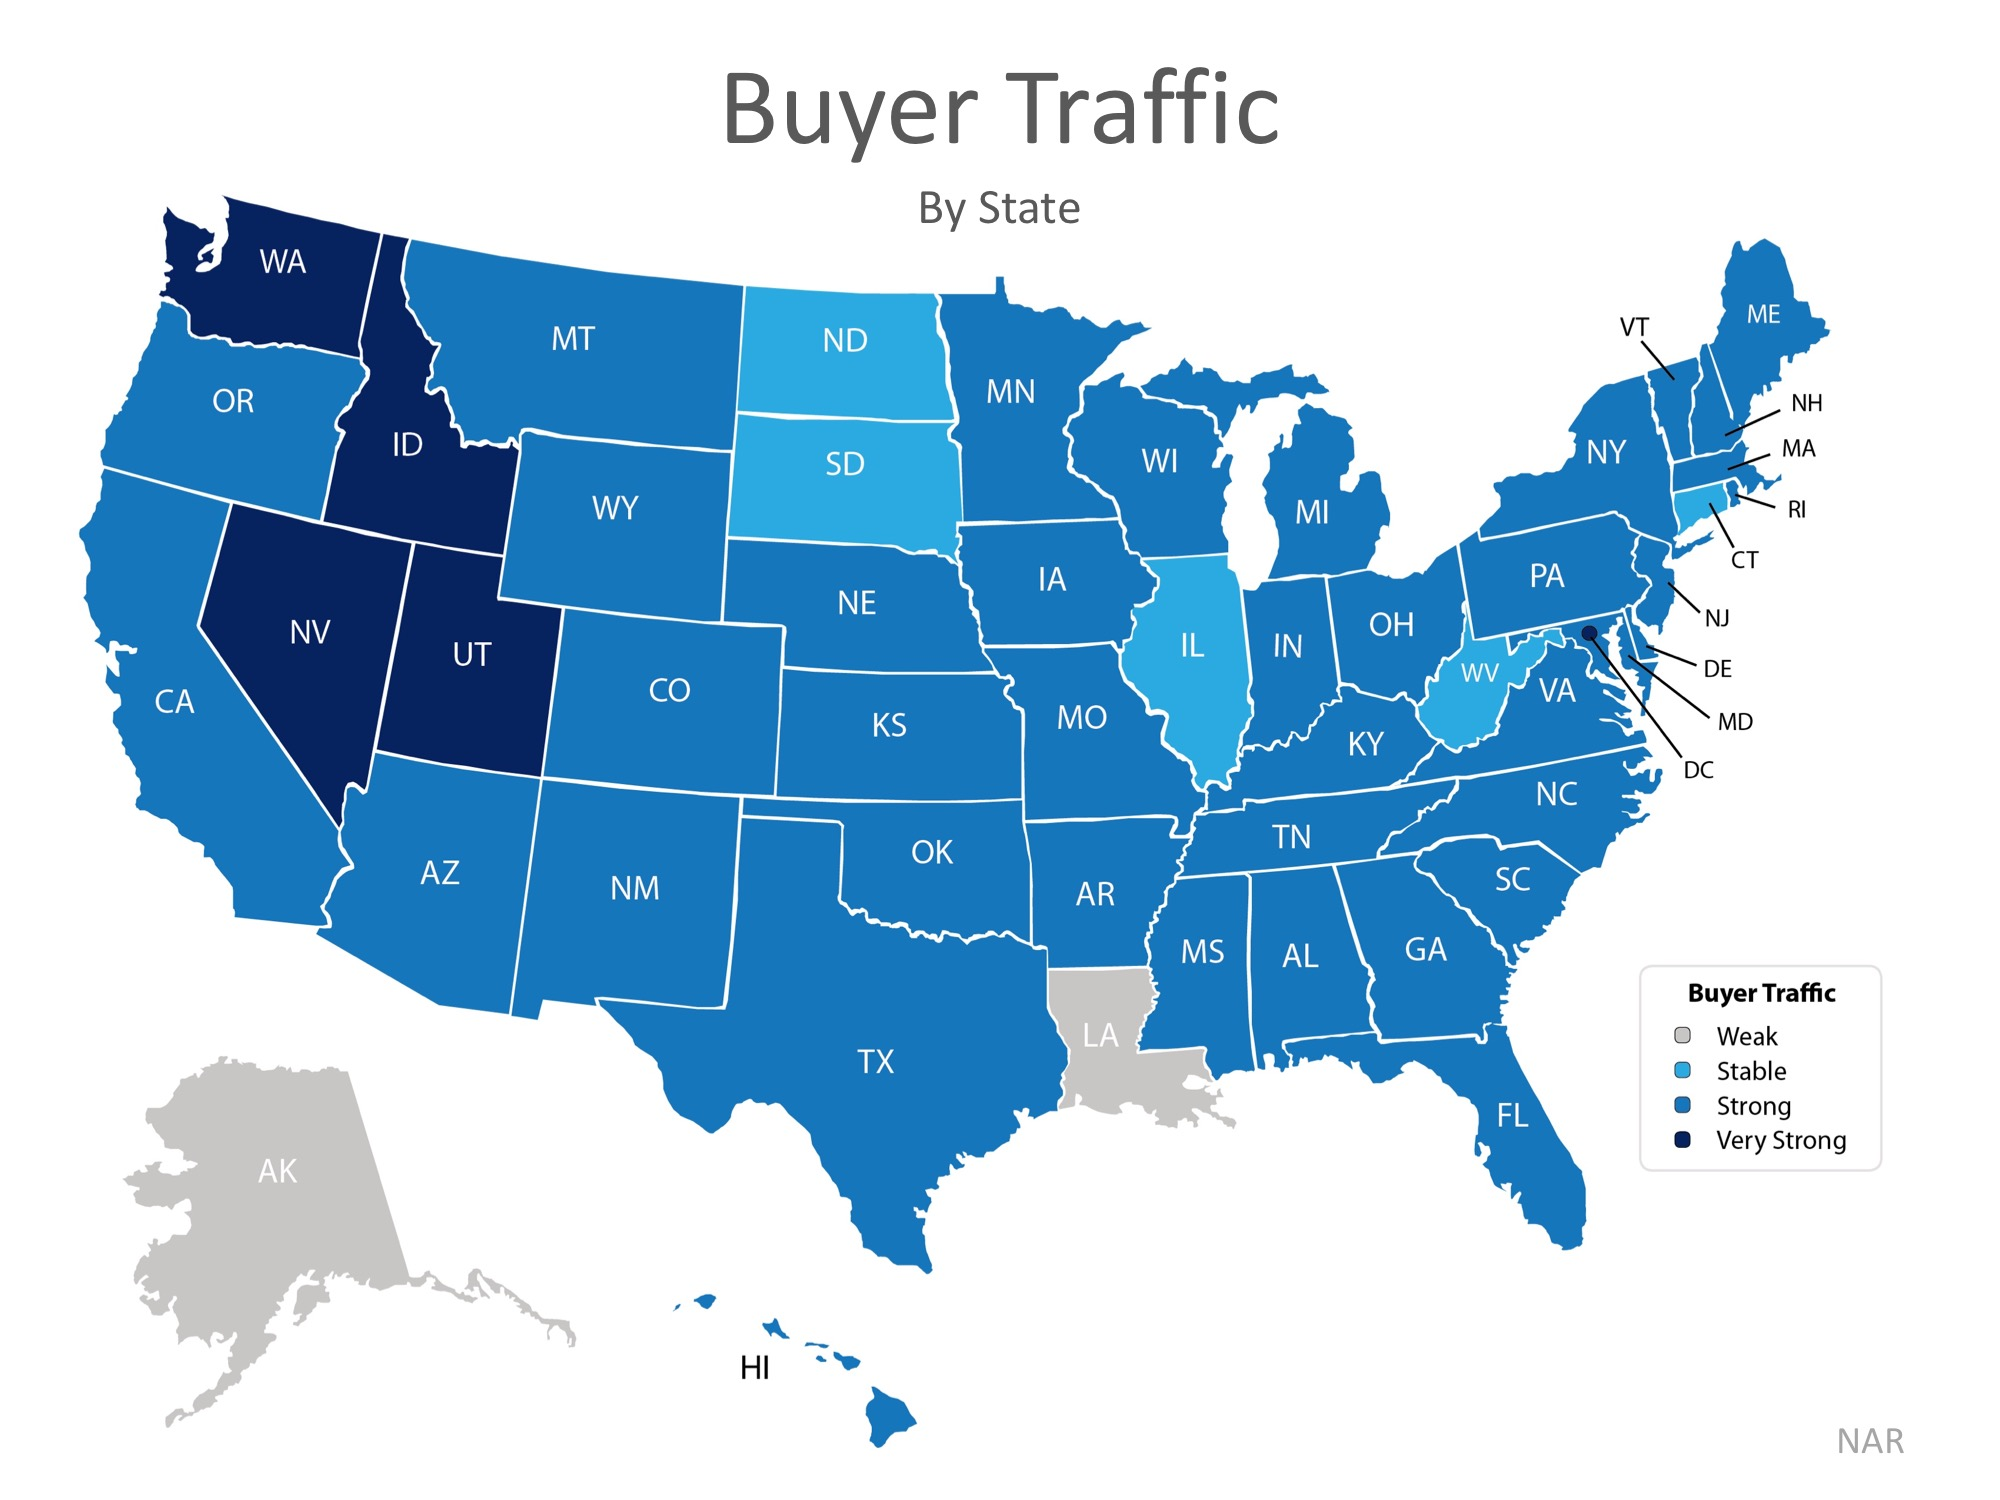 Now is a great time to sell your Bergen County Home | Gibbons Team Real Estate www.GibbonsTeam.net